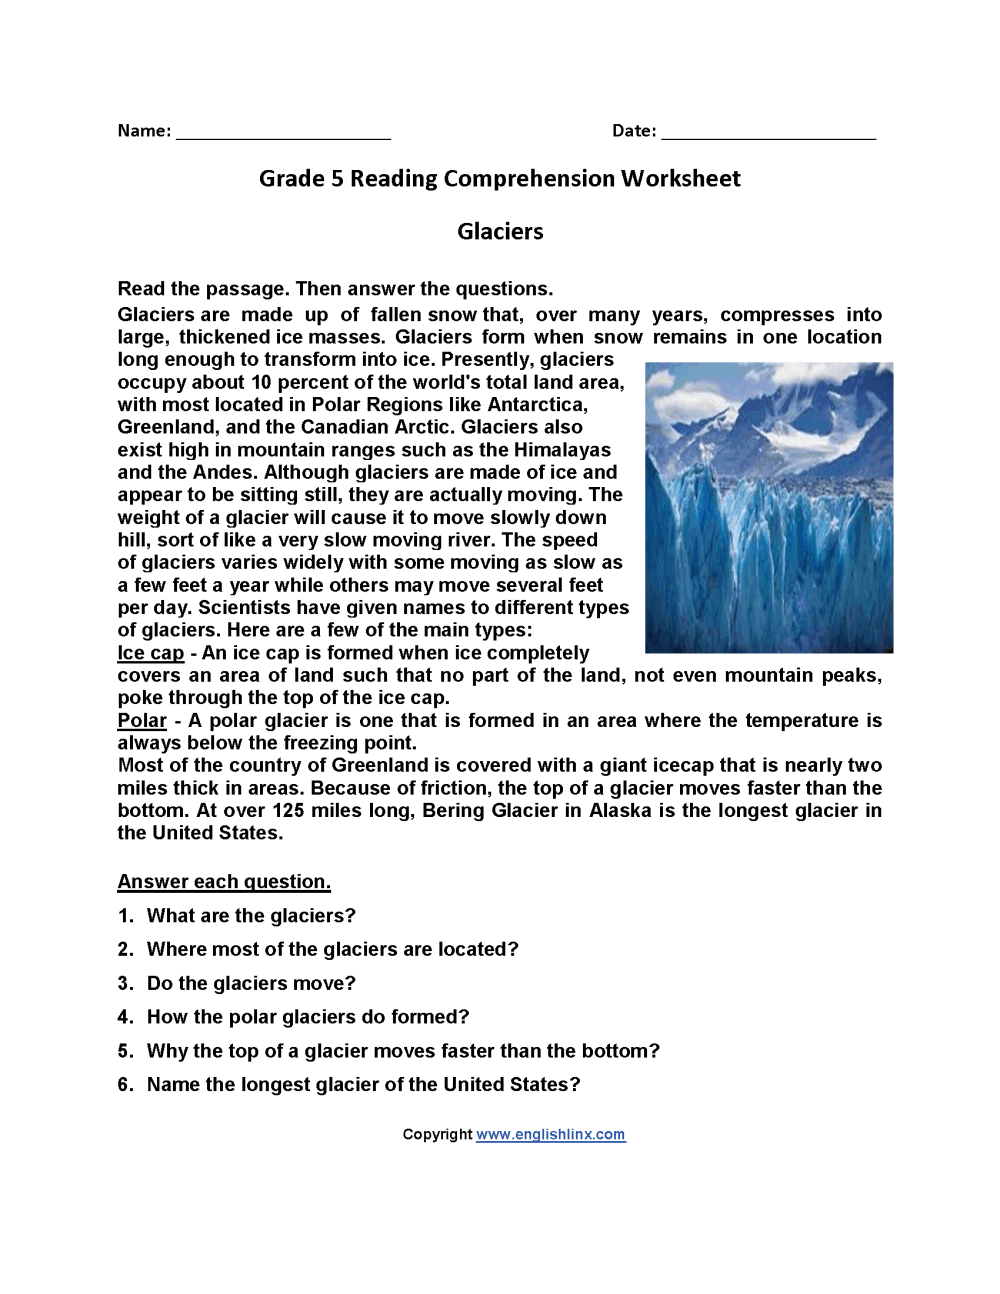 medium resolution of Printable Reading Prehension Worksheet For 5th Grade   Printable Worksheets  and Activities for Teachers